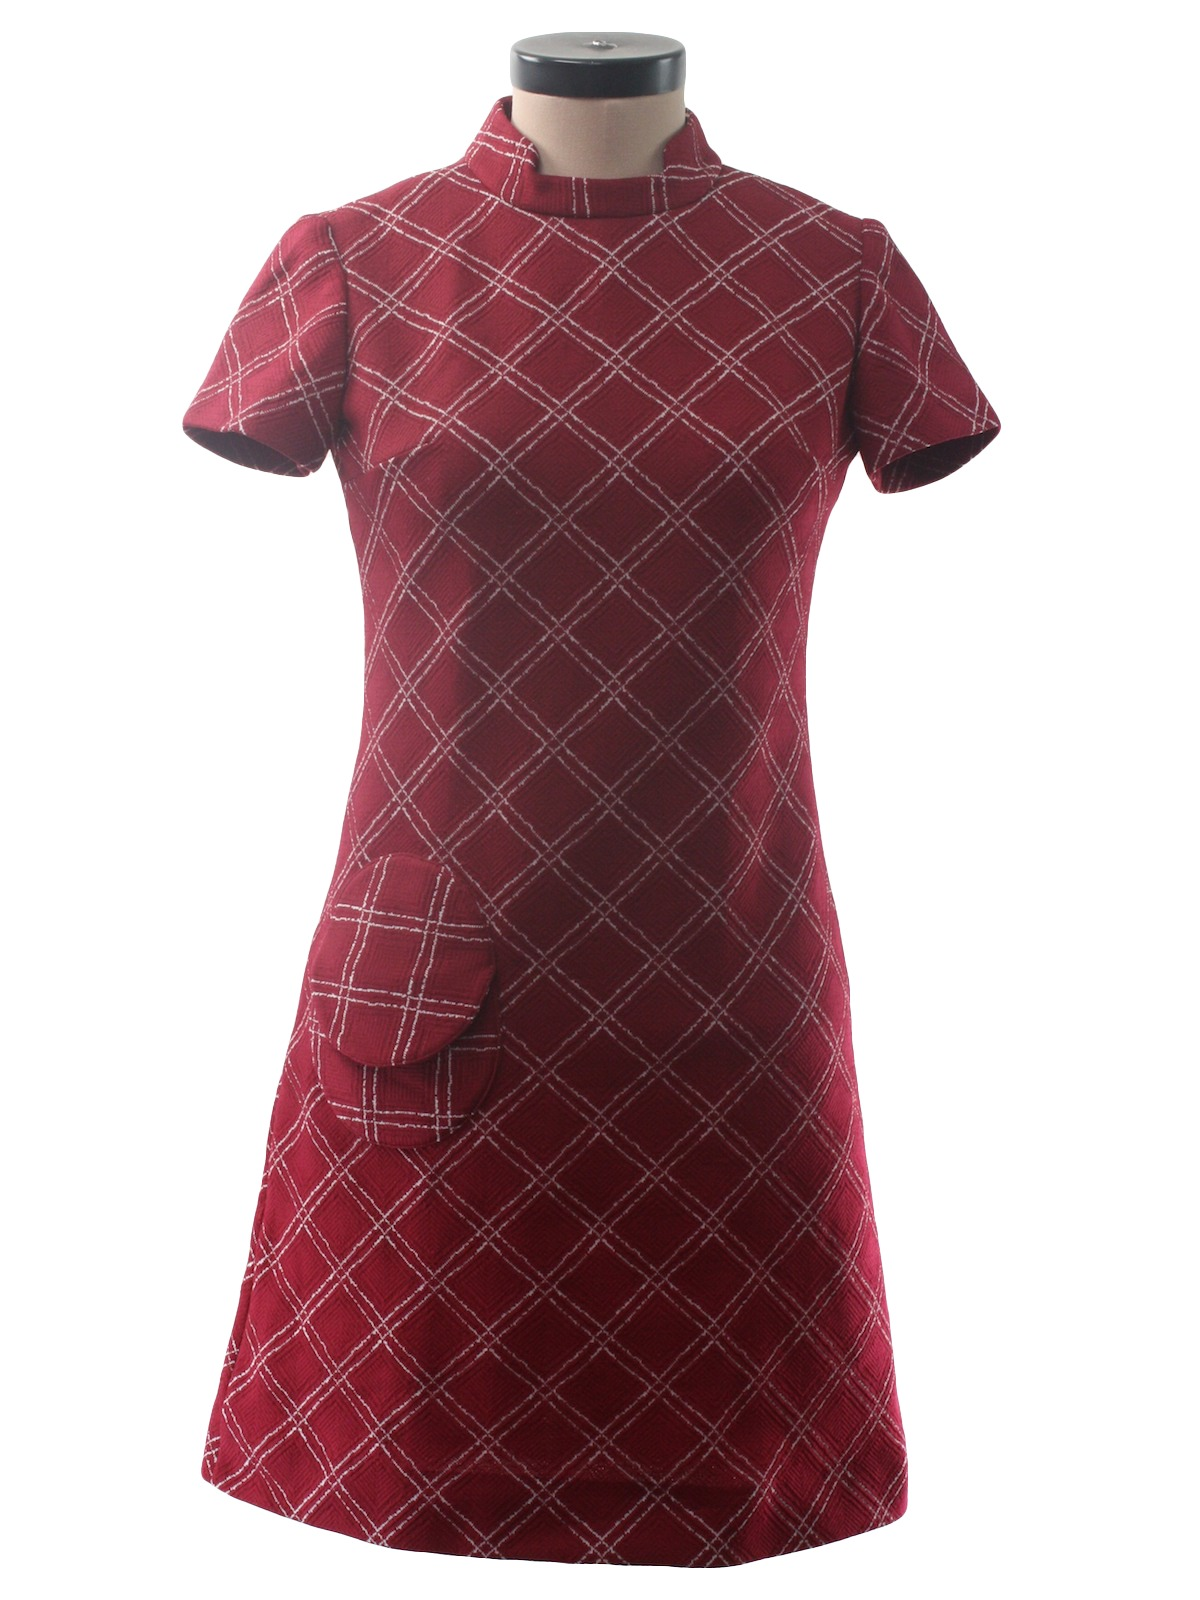 f34026b9ac05 1960 s Retro Dress  60s -Merley- Womens maroon and white polyester ...